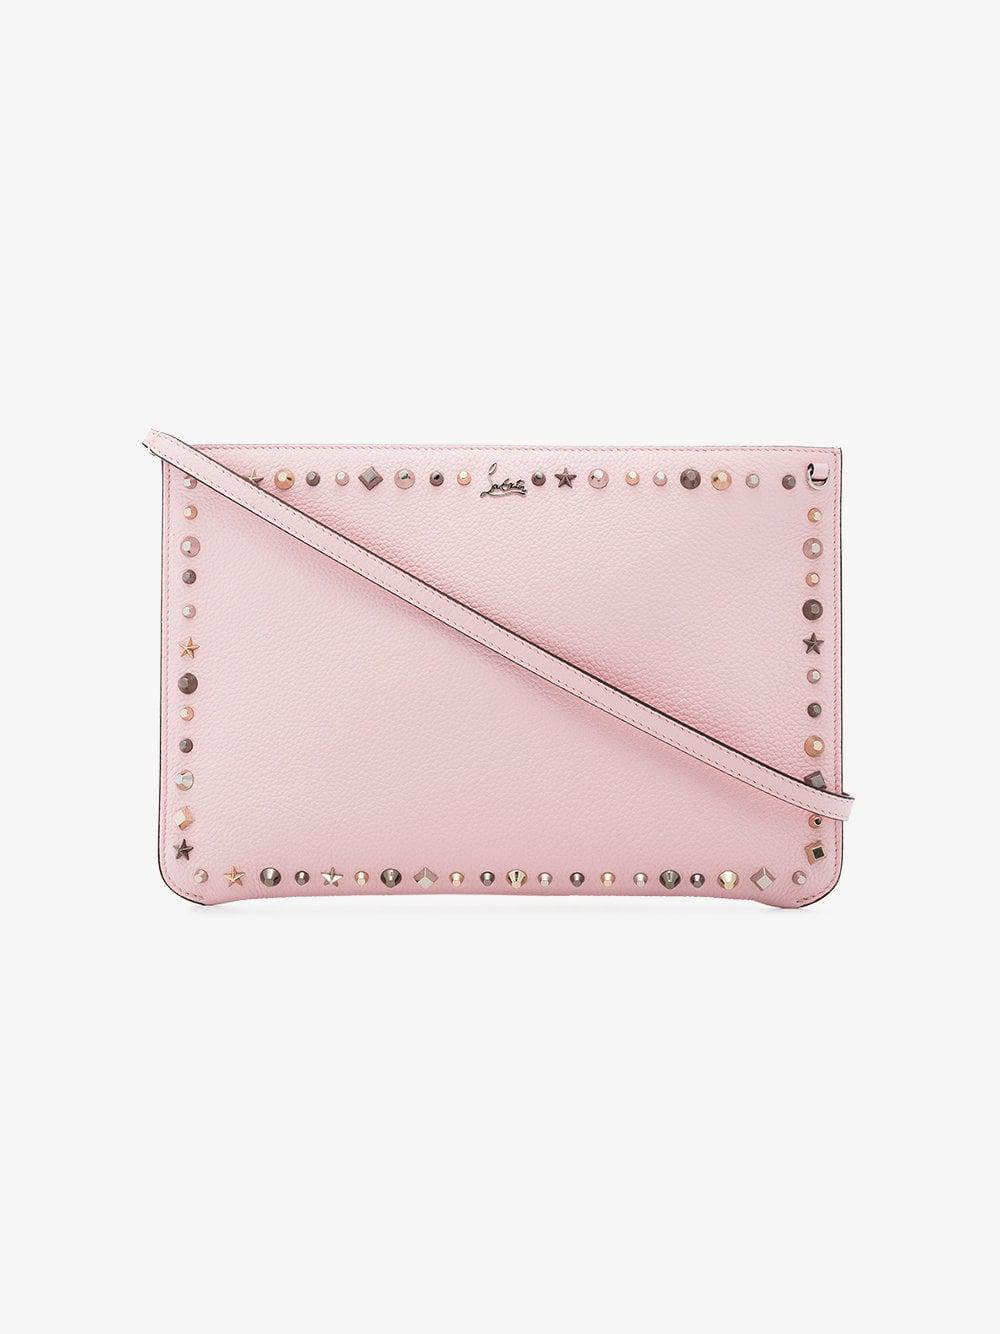 7ed66c3e112c Lyst - Christian Louboutin Pink Empire Spike Embellished Leather Clutch in  Pink - Save 2.1212121212121247%